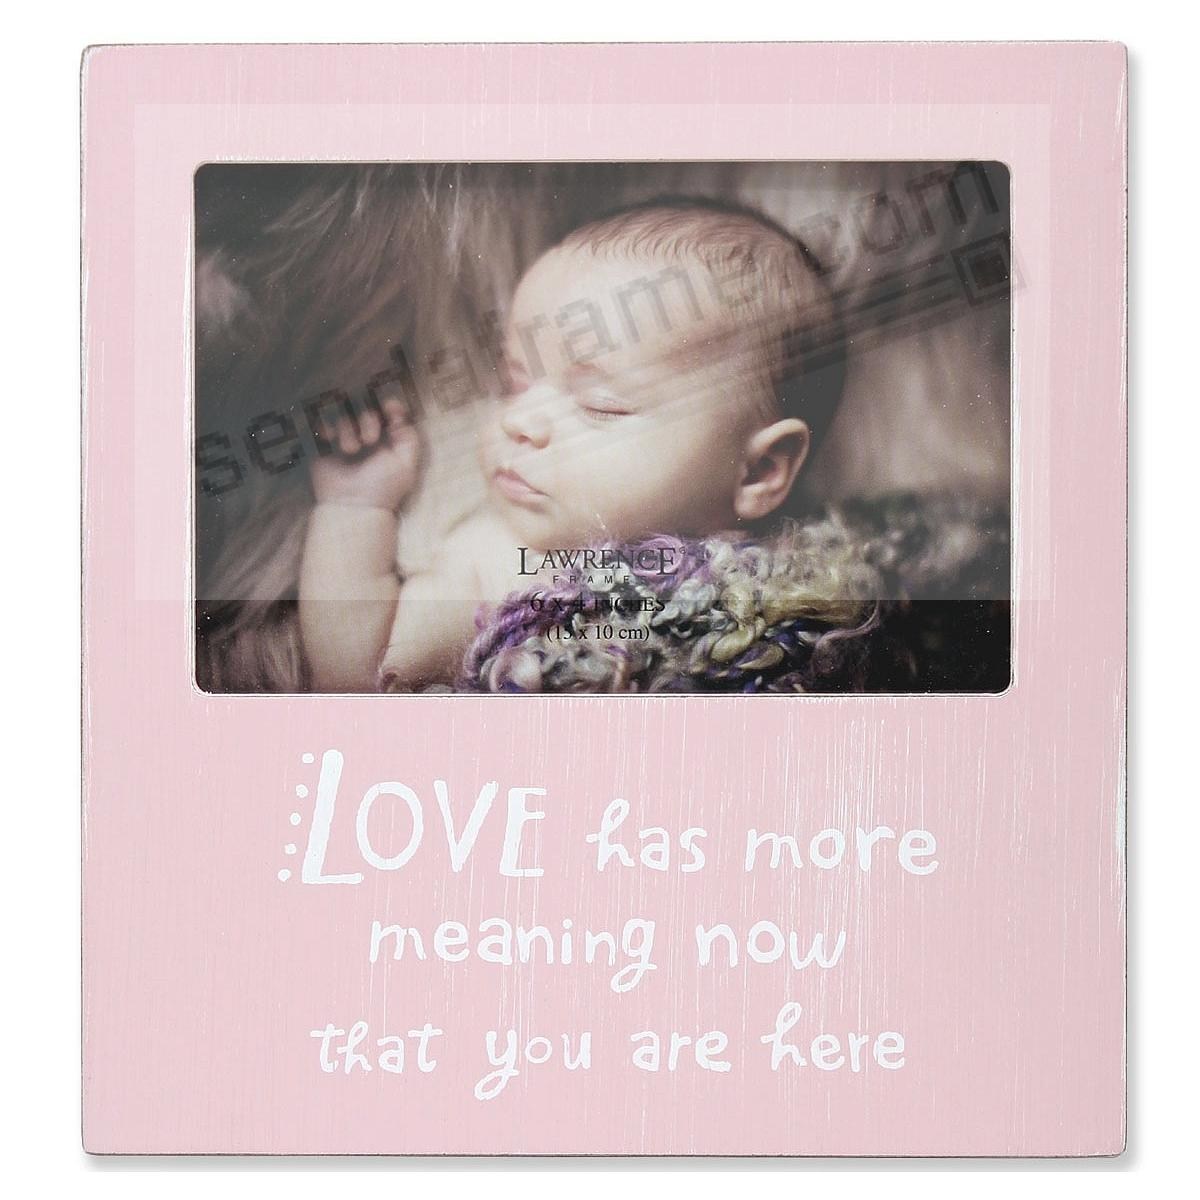 LOVE HAS MORE MEANING... Baby Pink 6x4 frame by Lawrence®